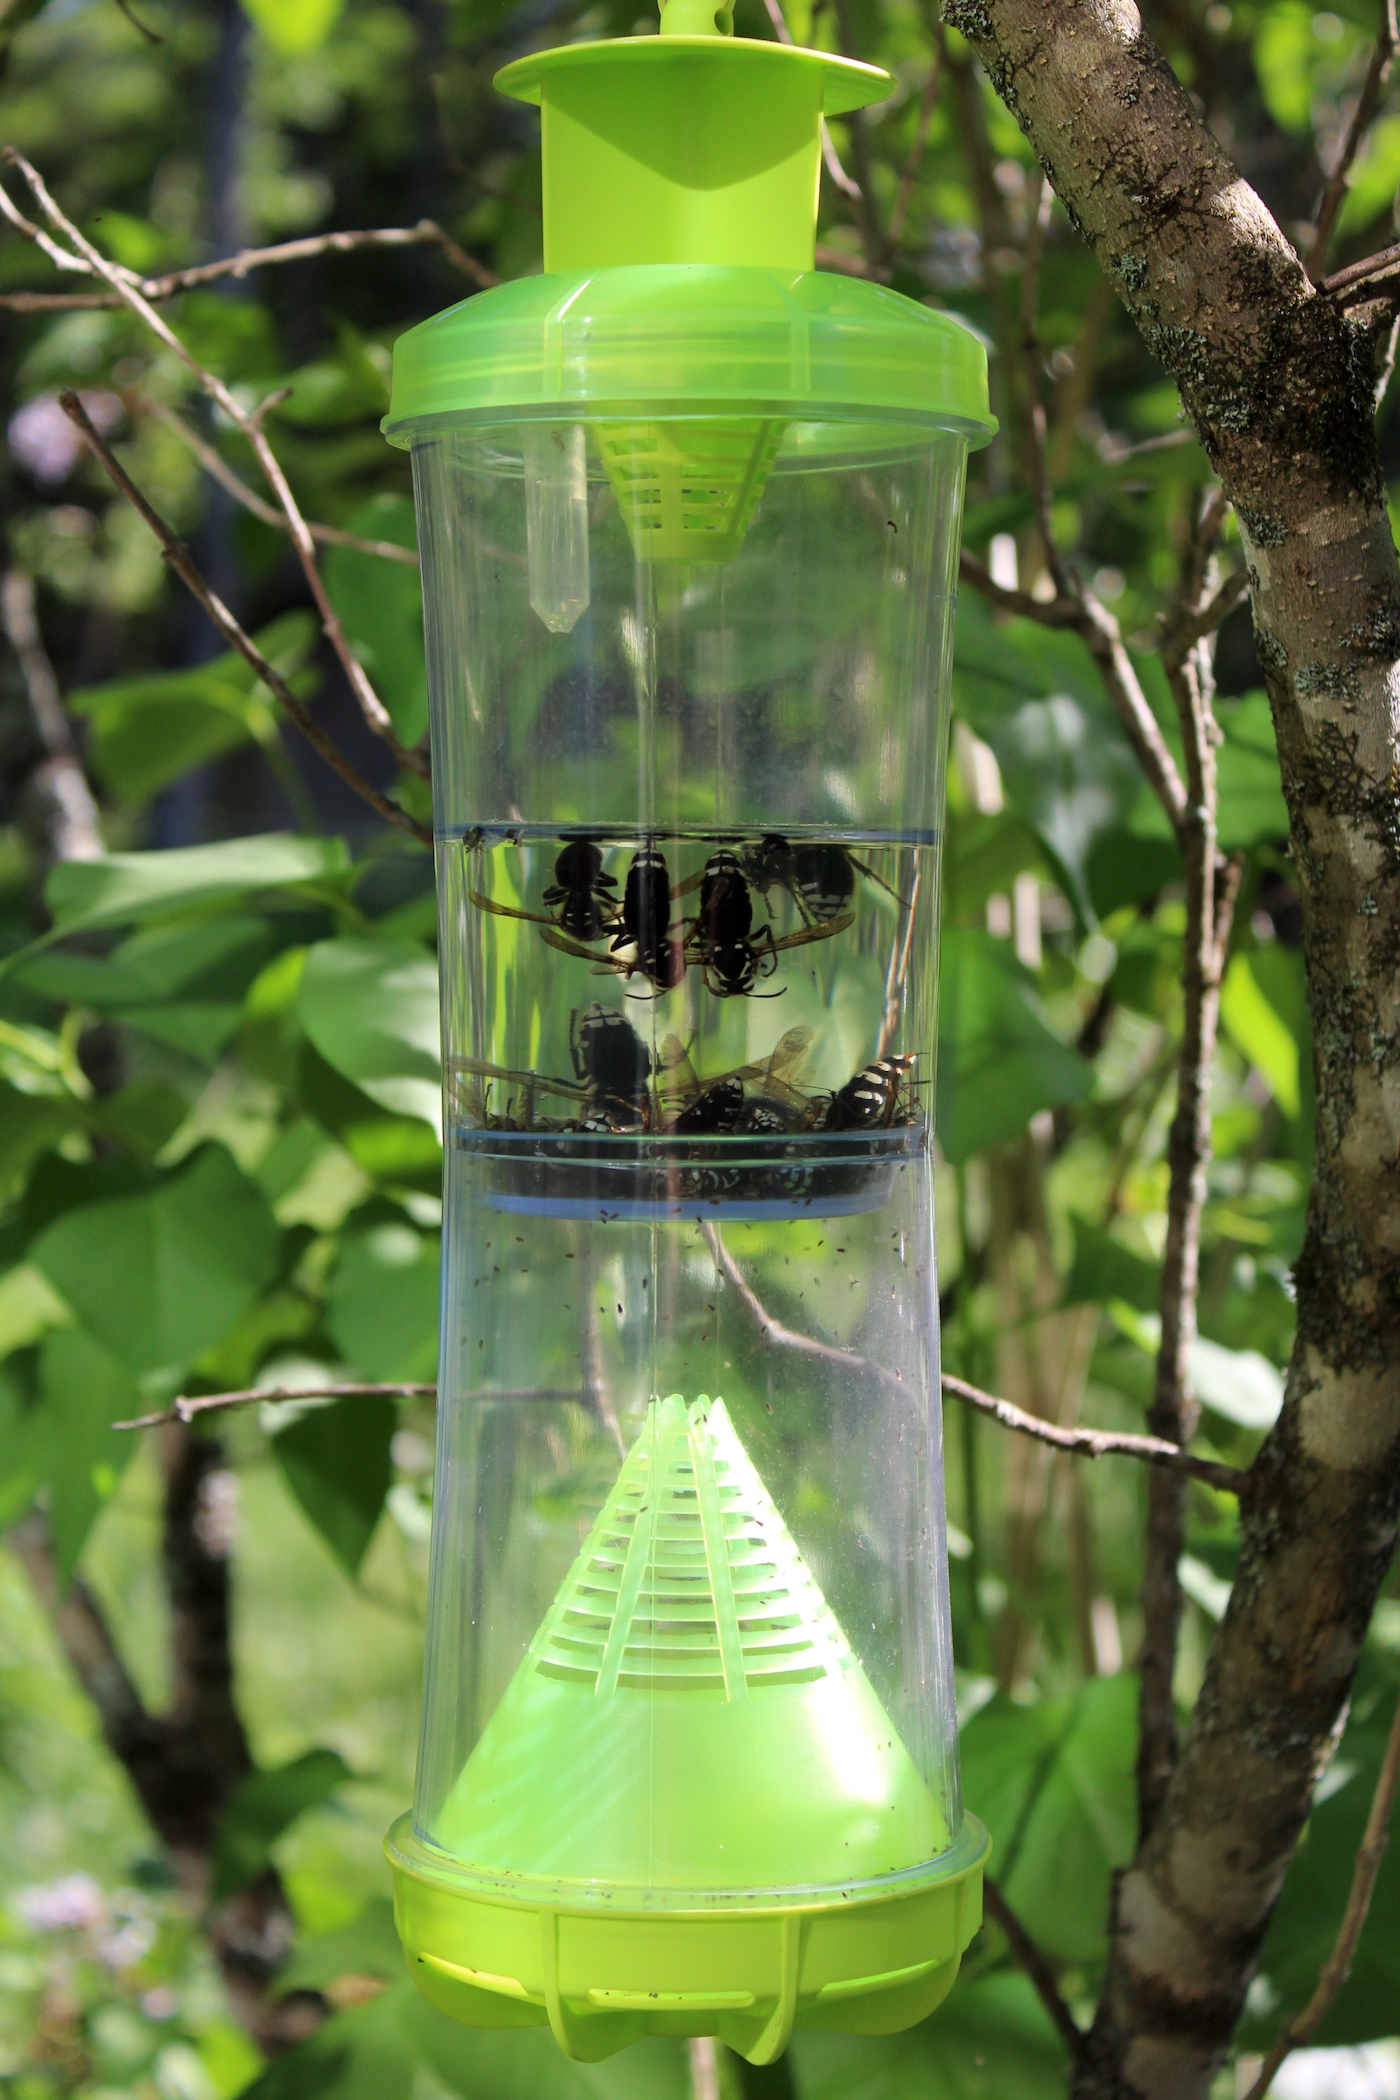 Trap full of bald faced wasps